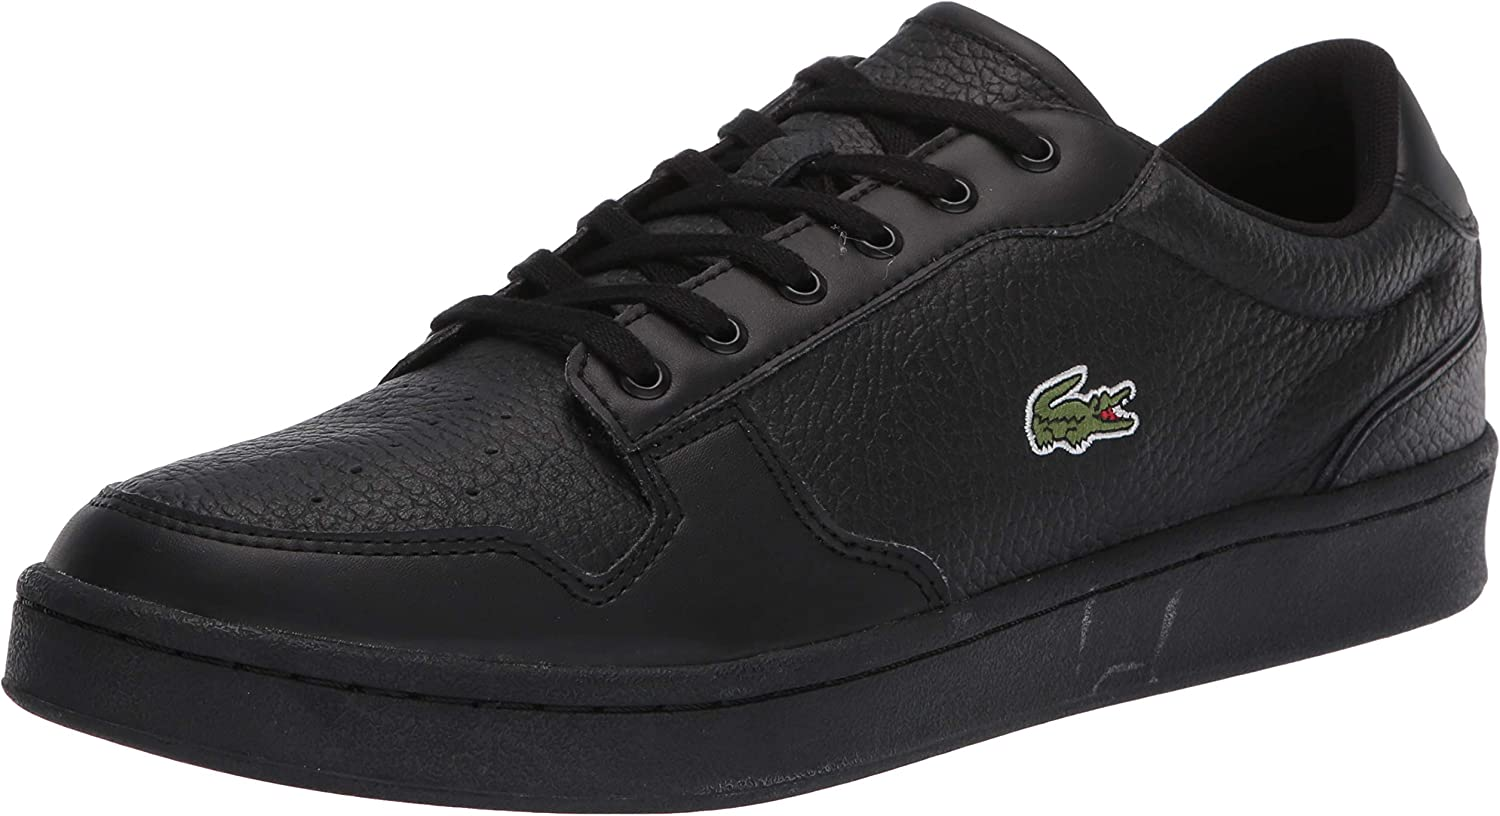 Max 71% OFF Lacoste Men's Masters Sneaker Ranking TOP3